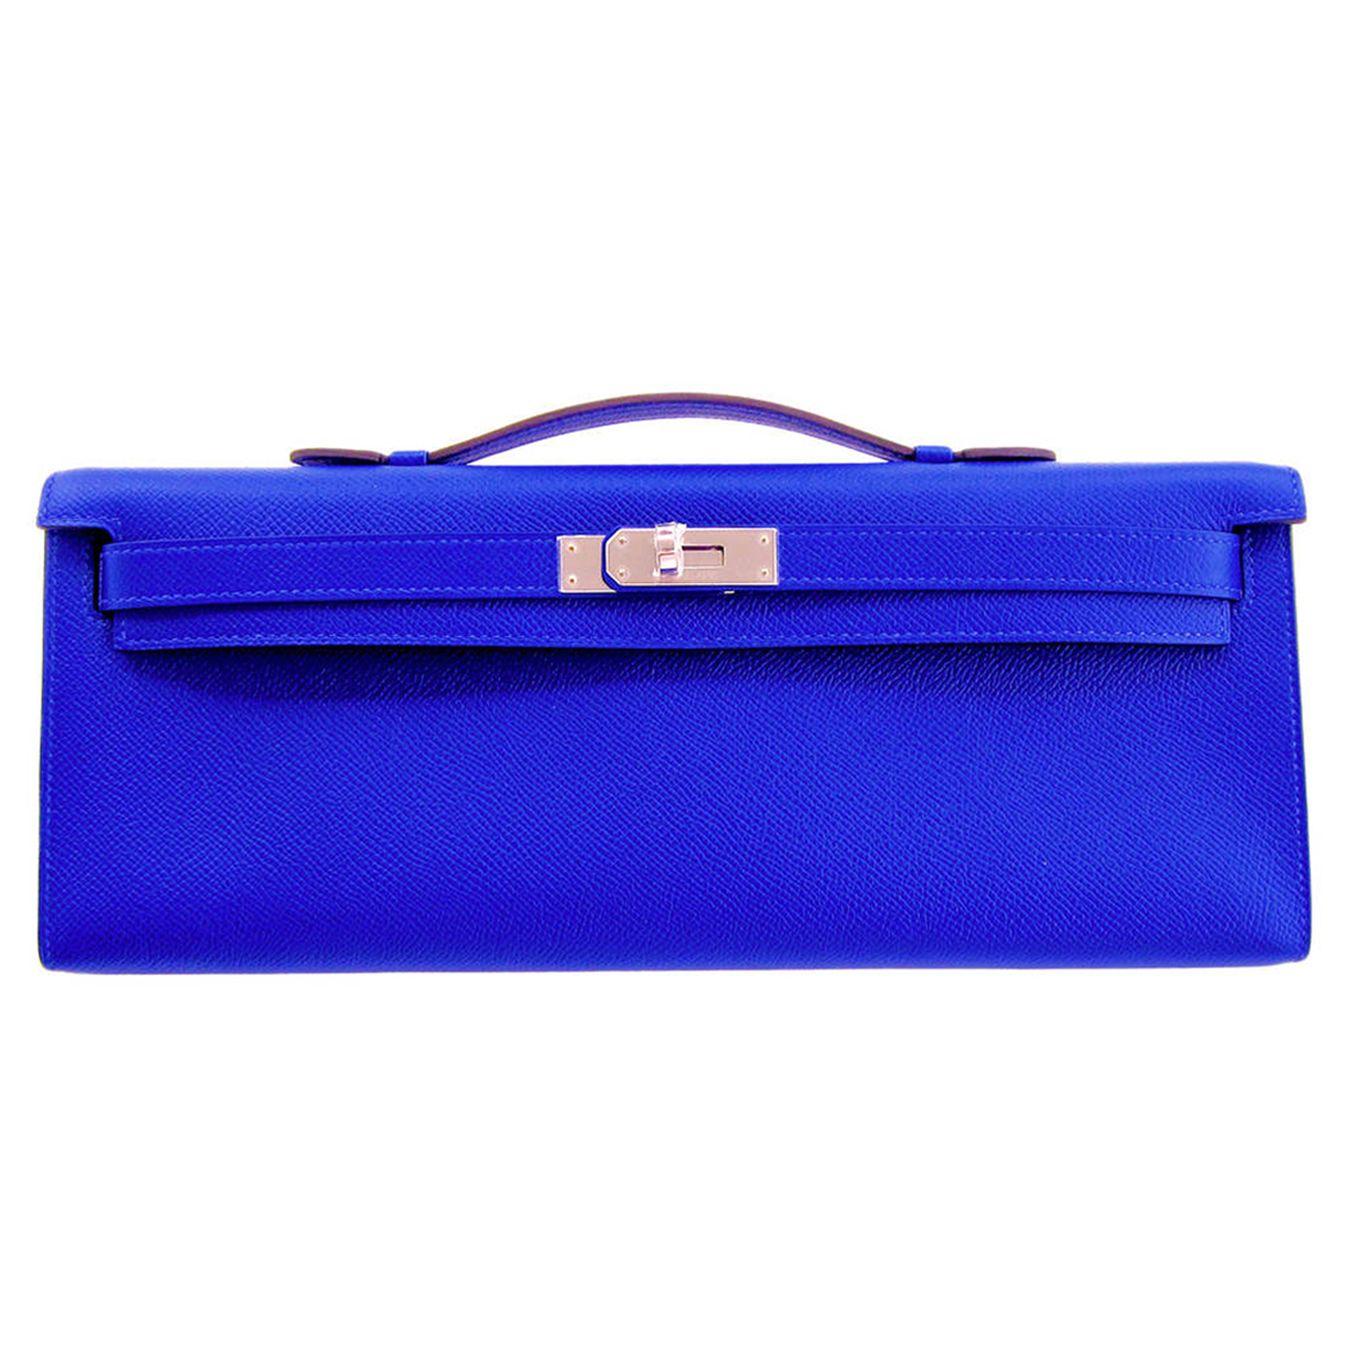 949777850d6 Hermes  Kelly Cut  Clutch  Bag Blue Electric Epsom   ! ♥ Fashion ...